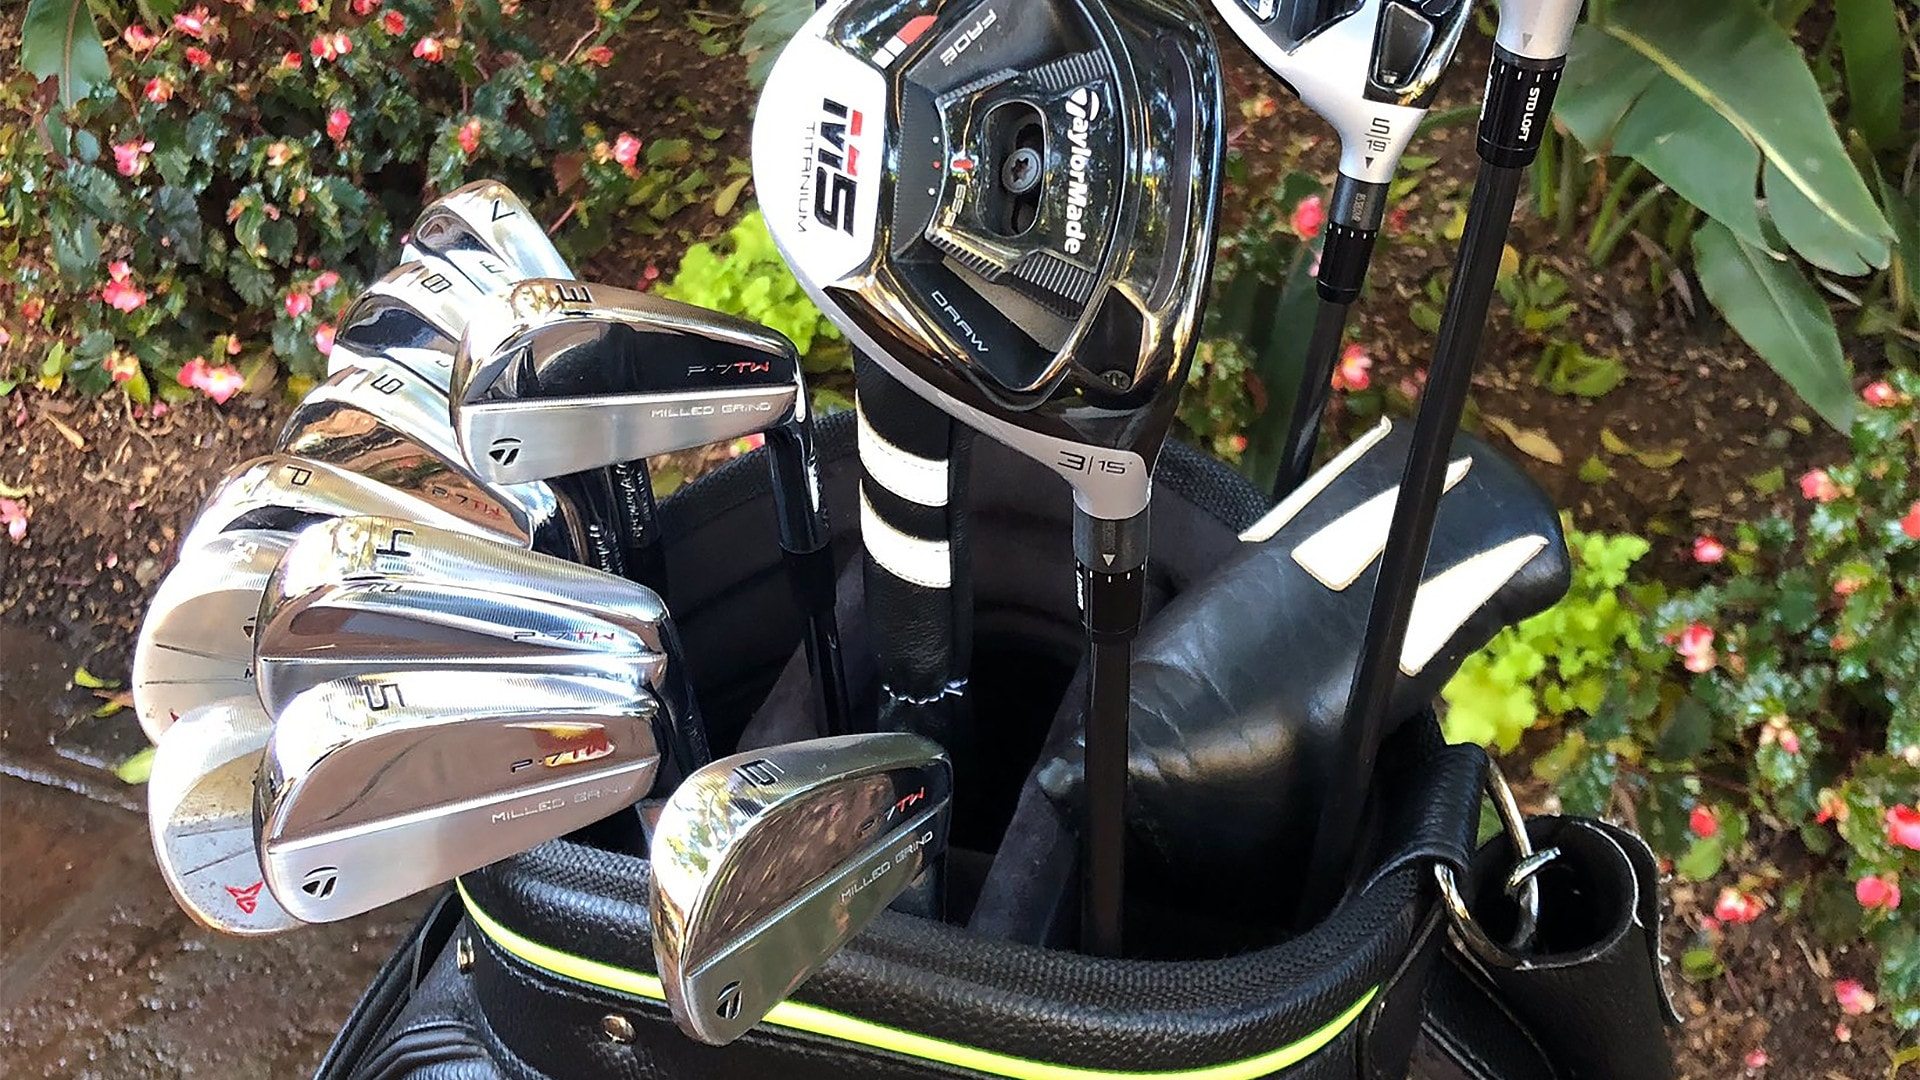 Tiger Woods shows off new clubs for new season   Golf Channel